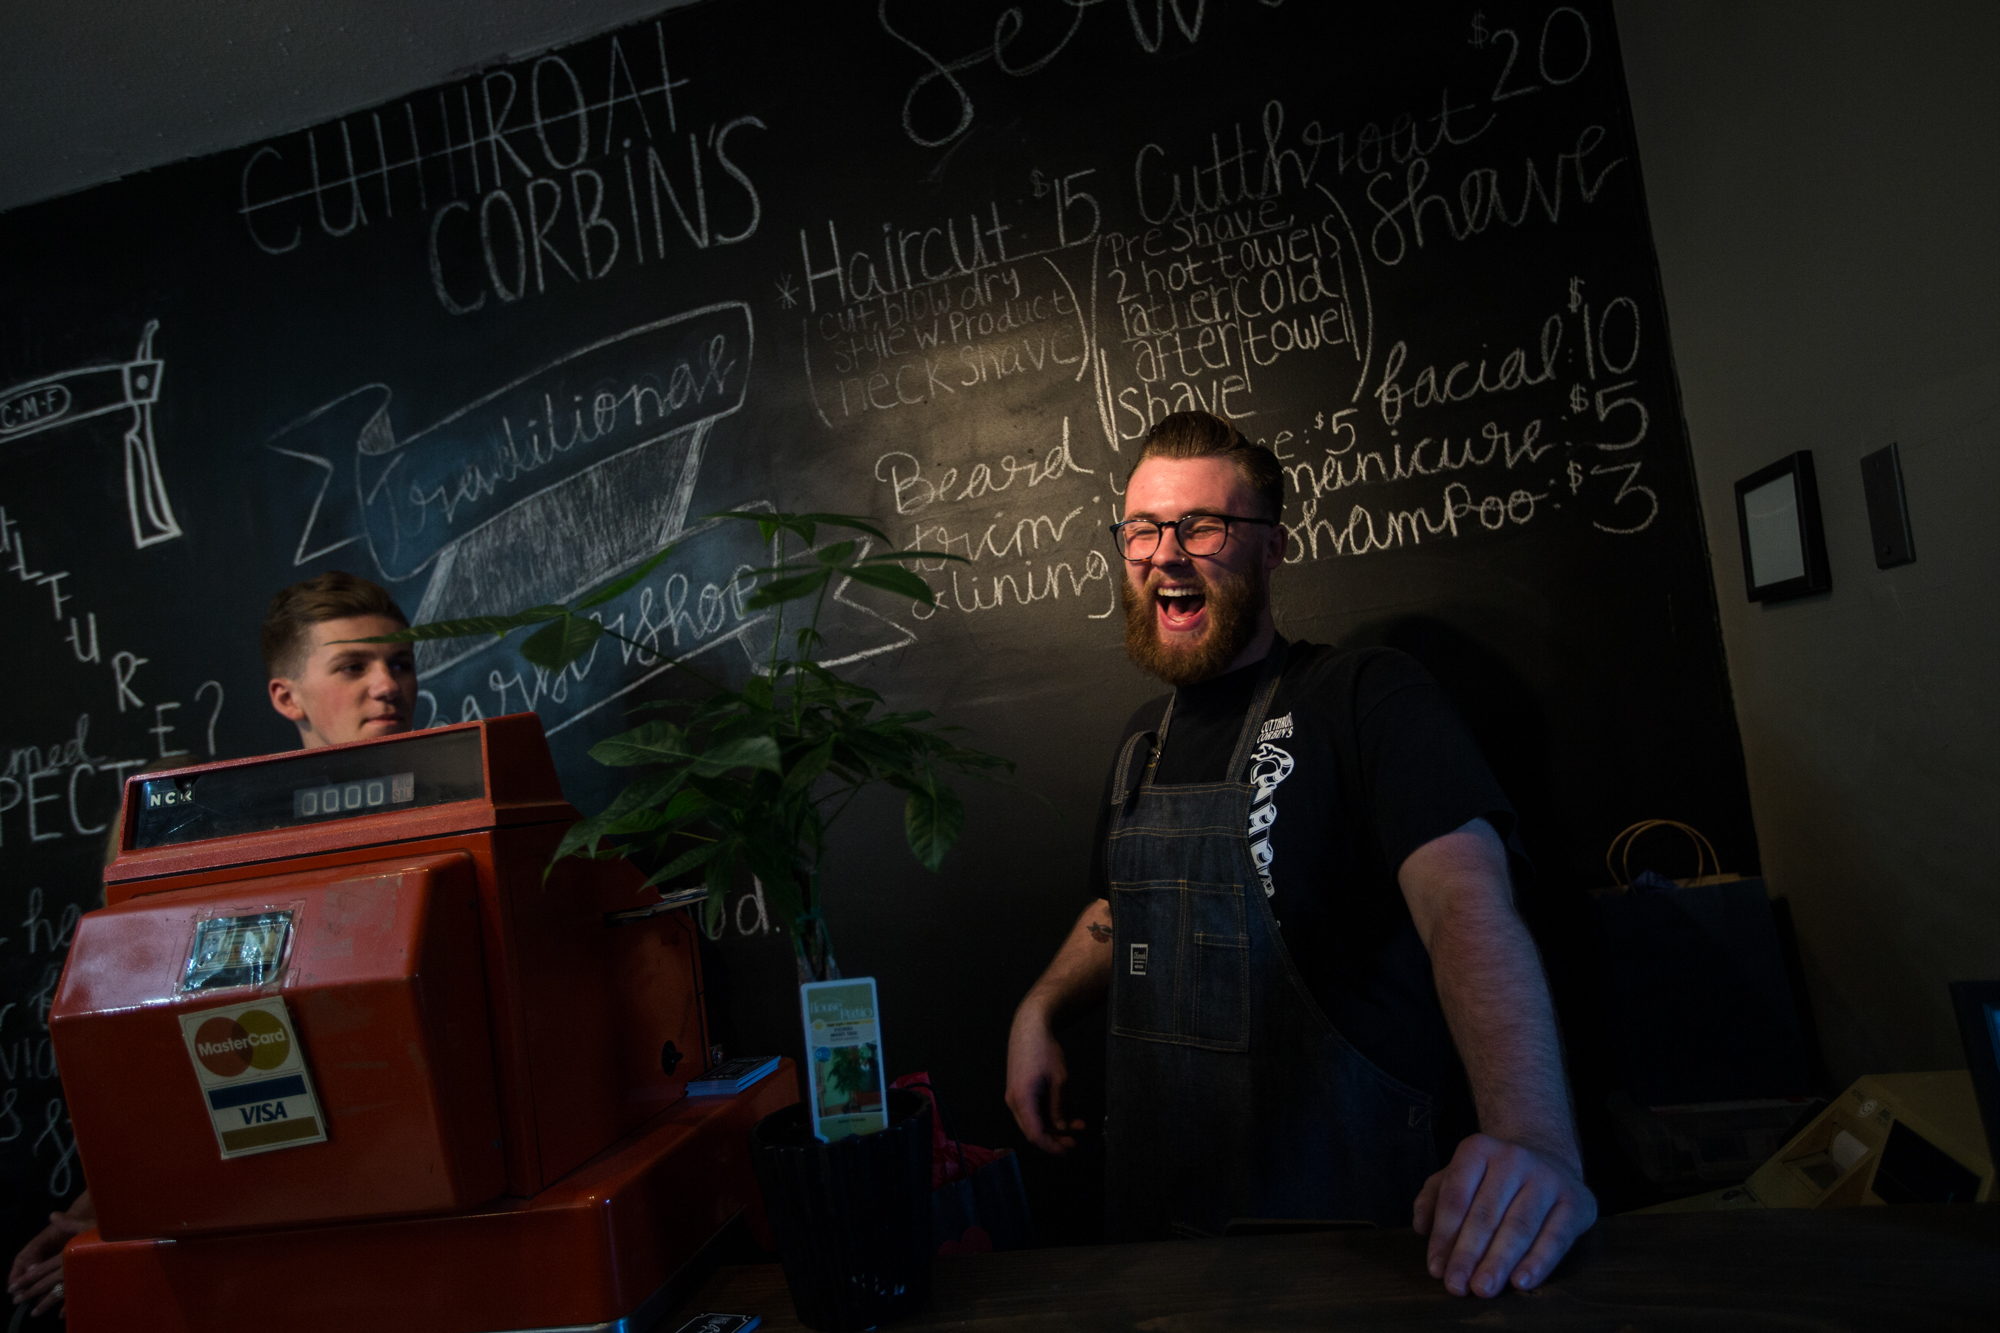 Corbin Fincham, 19, laughs with a friend at the cashier desk during the grand opening of his new barbershop on Friday, June 1, 2018, at Cutthroat Corbin's Barber Shop in Rockton. [SCOTT P. YATES/RRSTAR.COM STAFF]